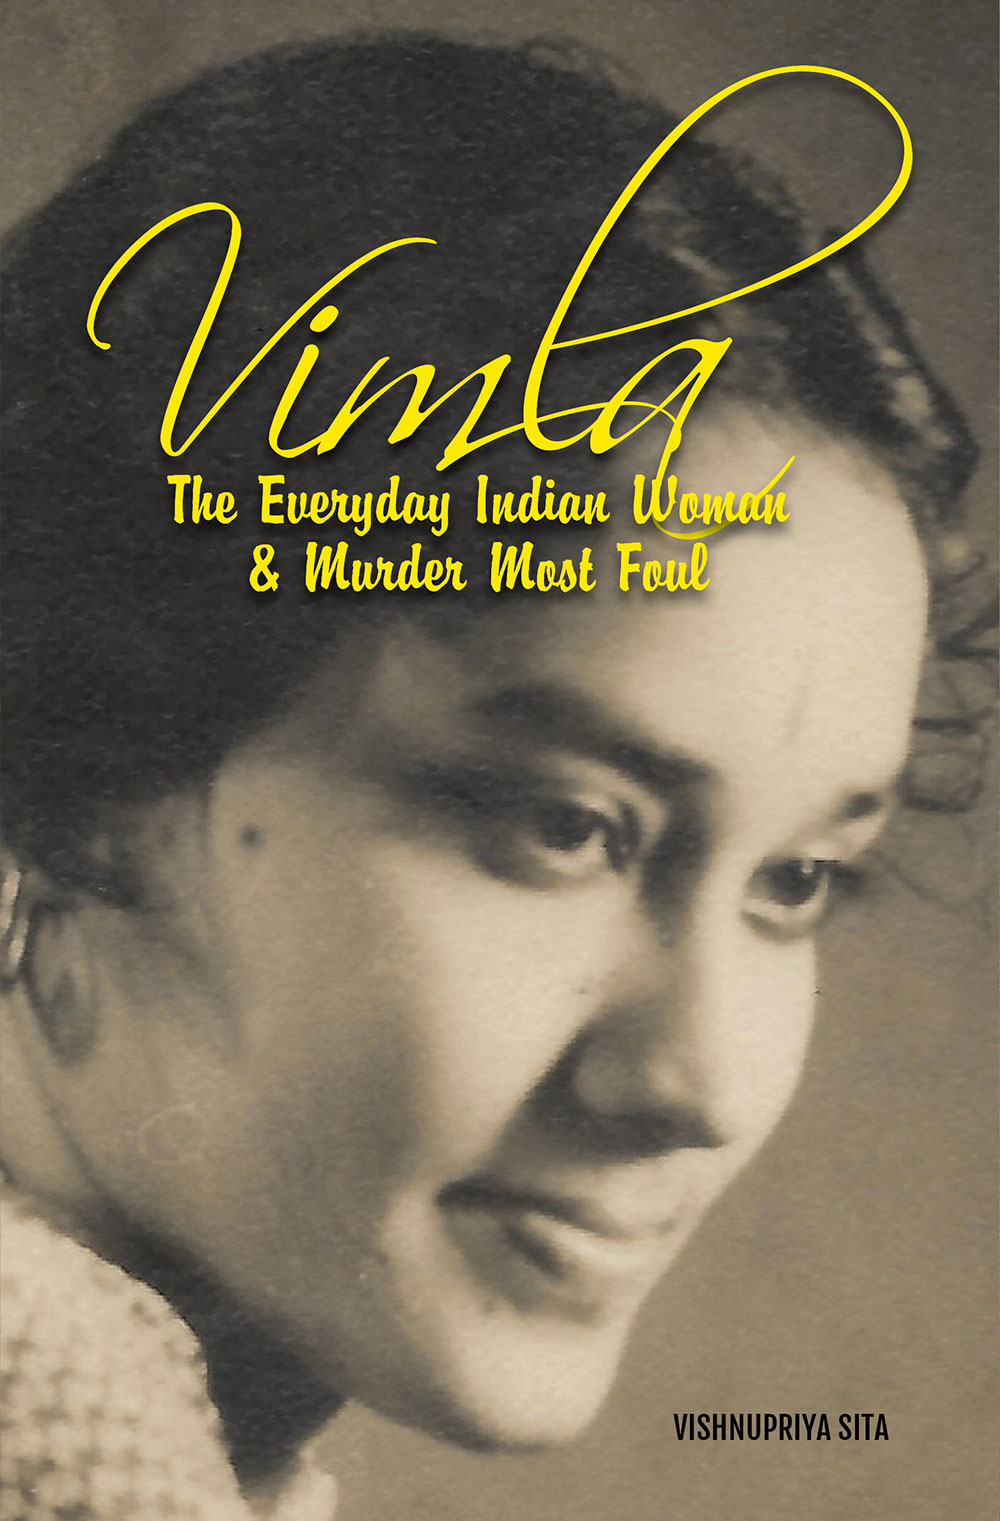 Vimla: The Everyday Indian Woman & Murder Most Foul